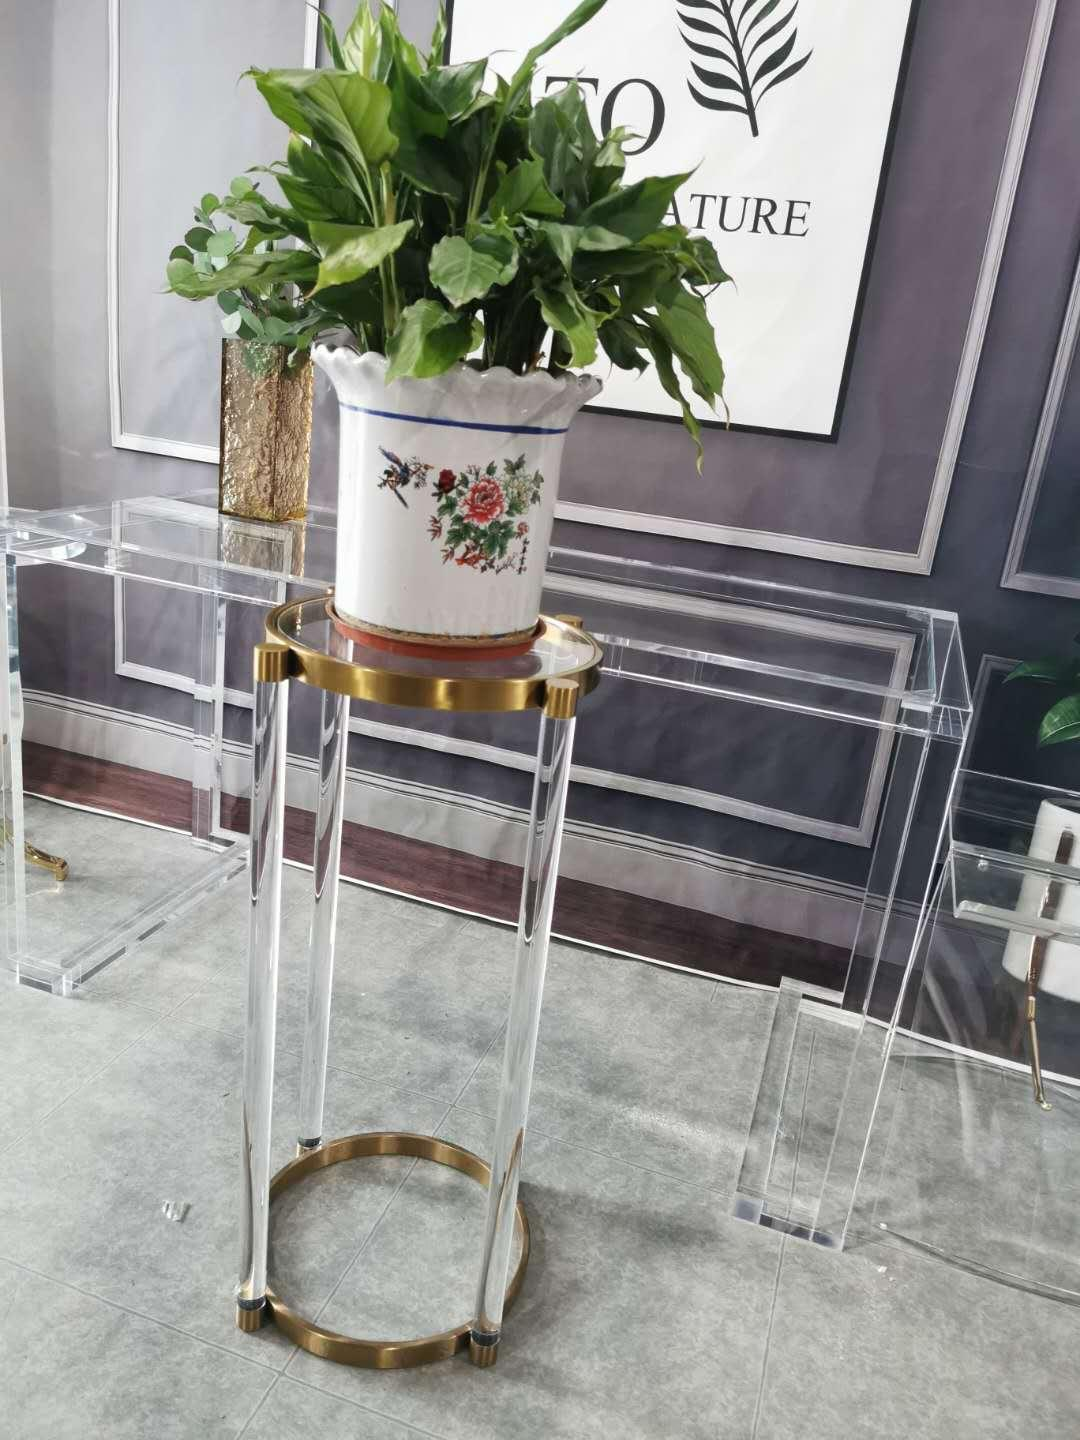 ACRYLIC FLOWER RACK, lucite flower stand 3